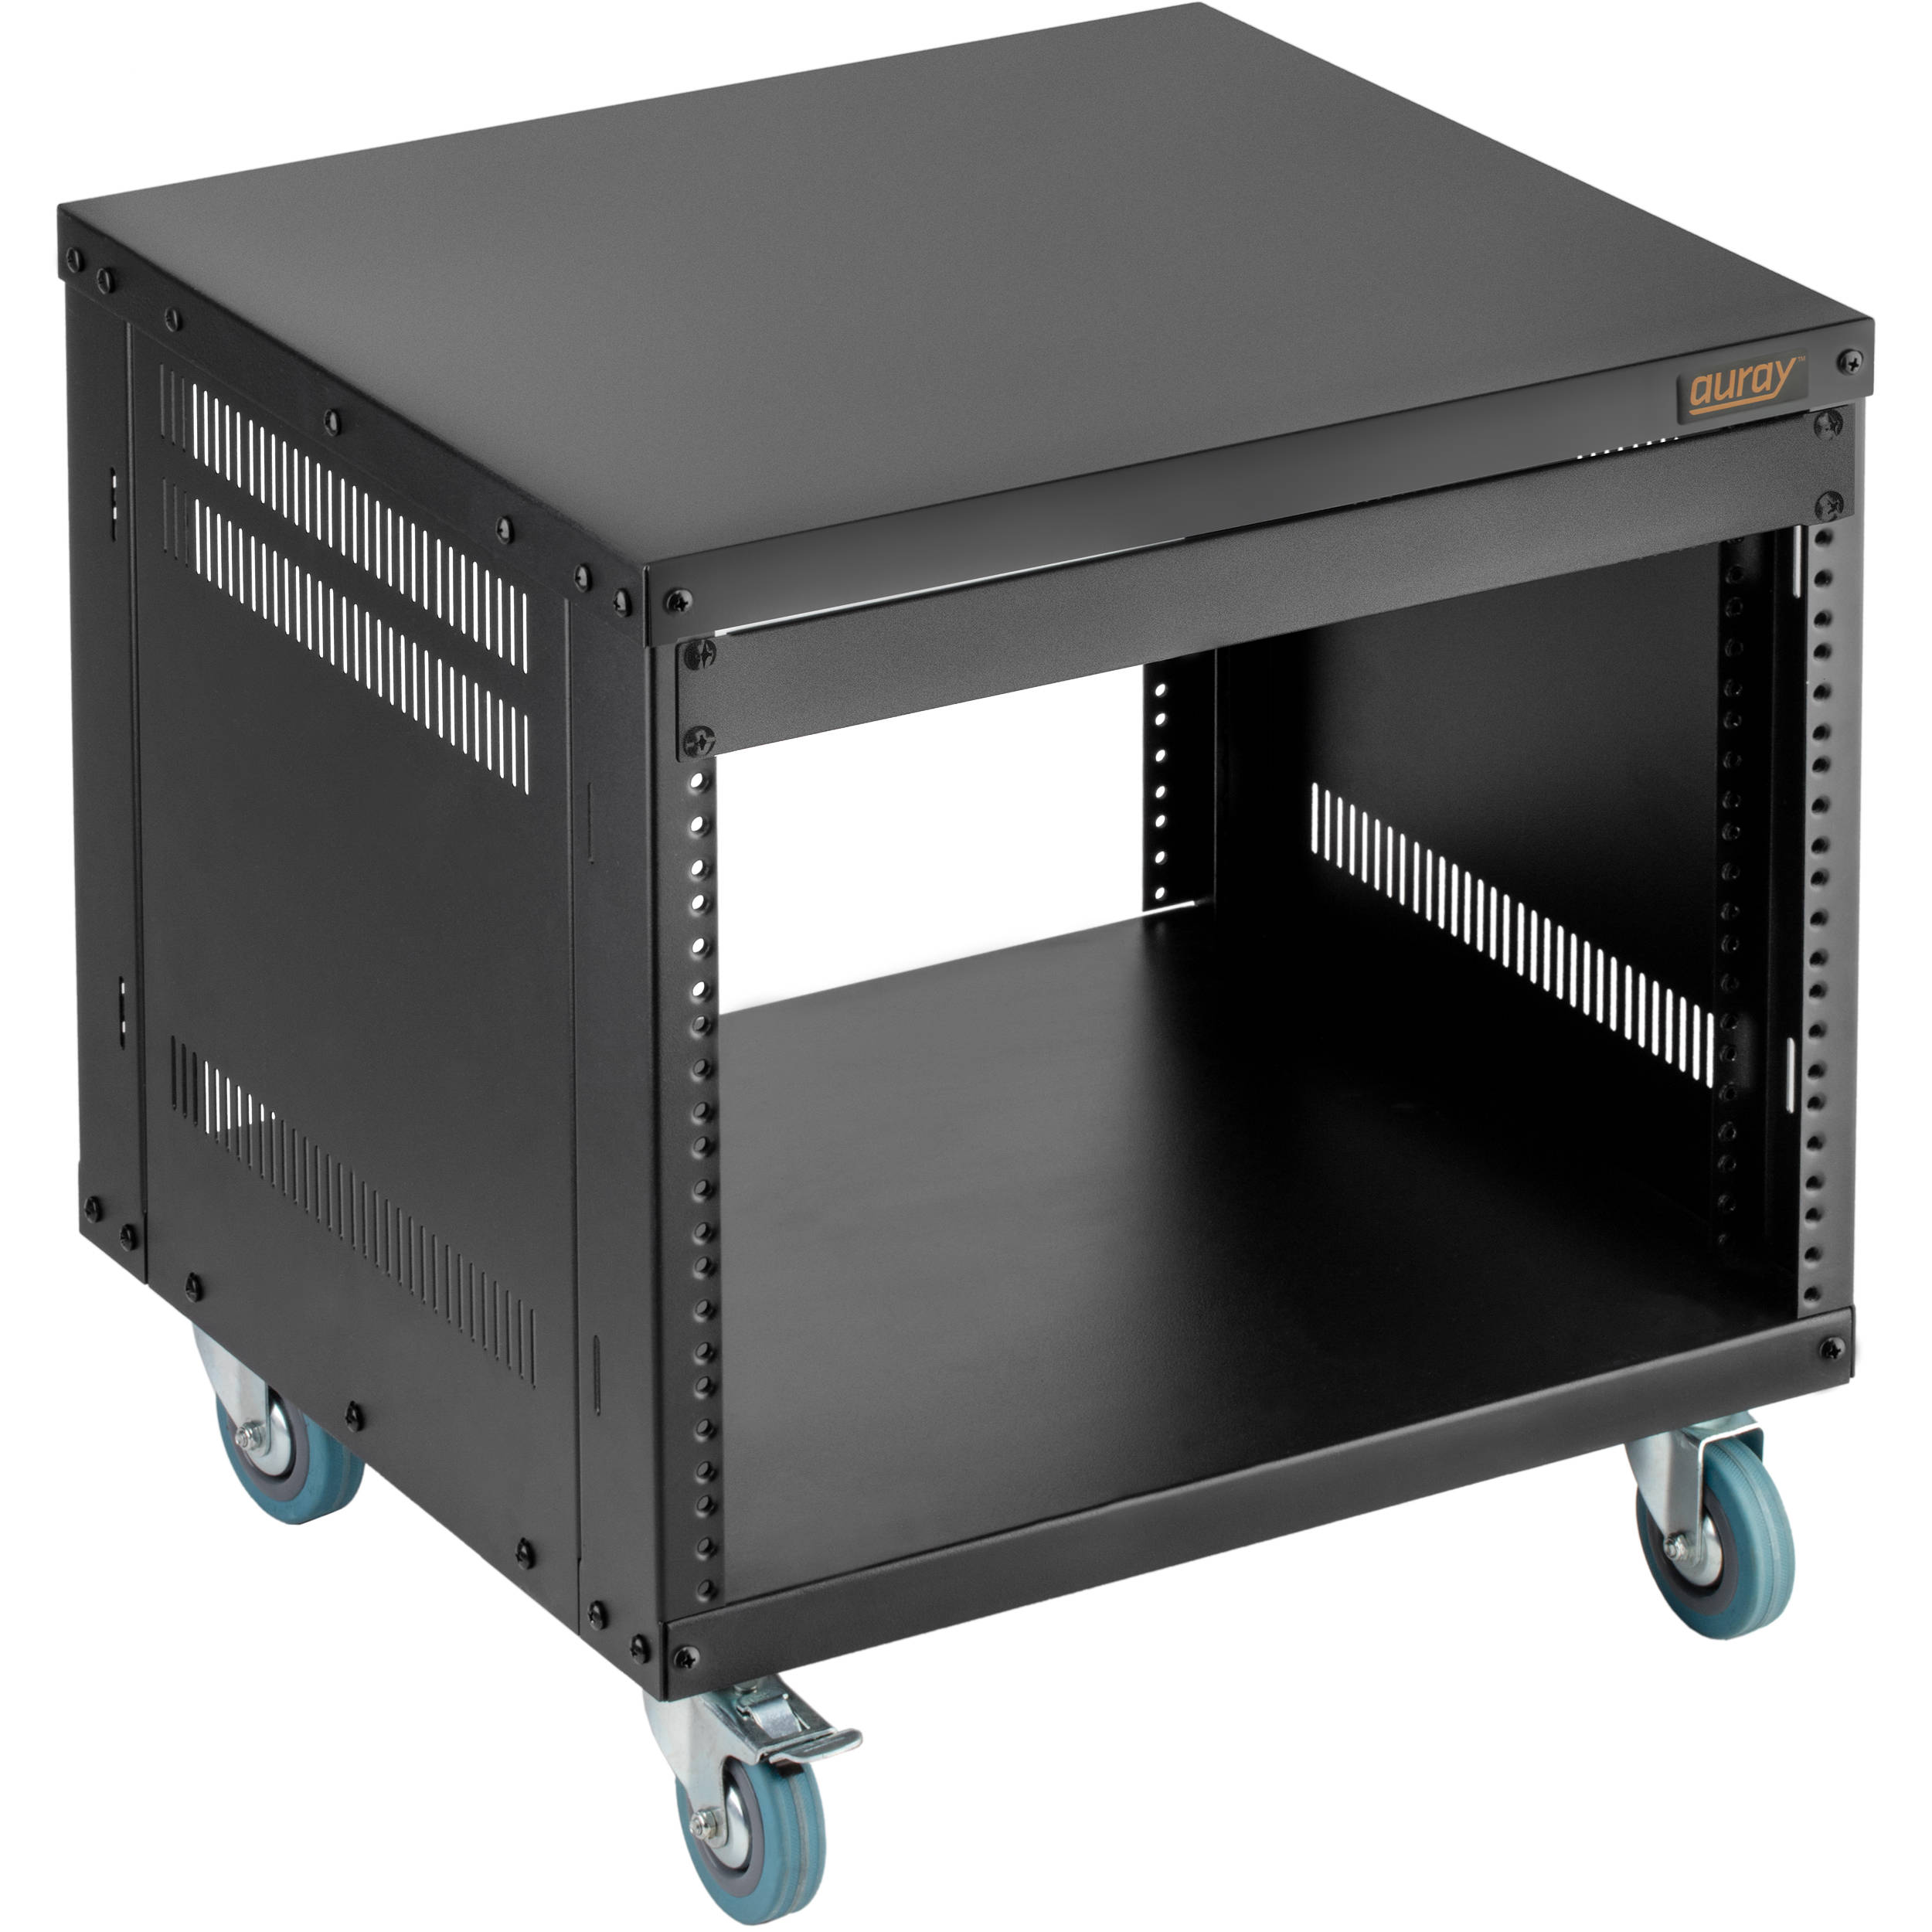 racks stanley mounted rack s jay products cabinets equipment furniture associates wall